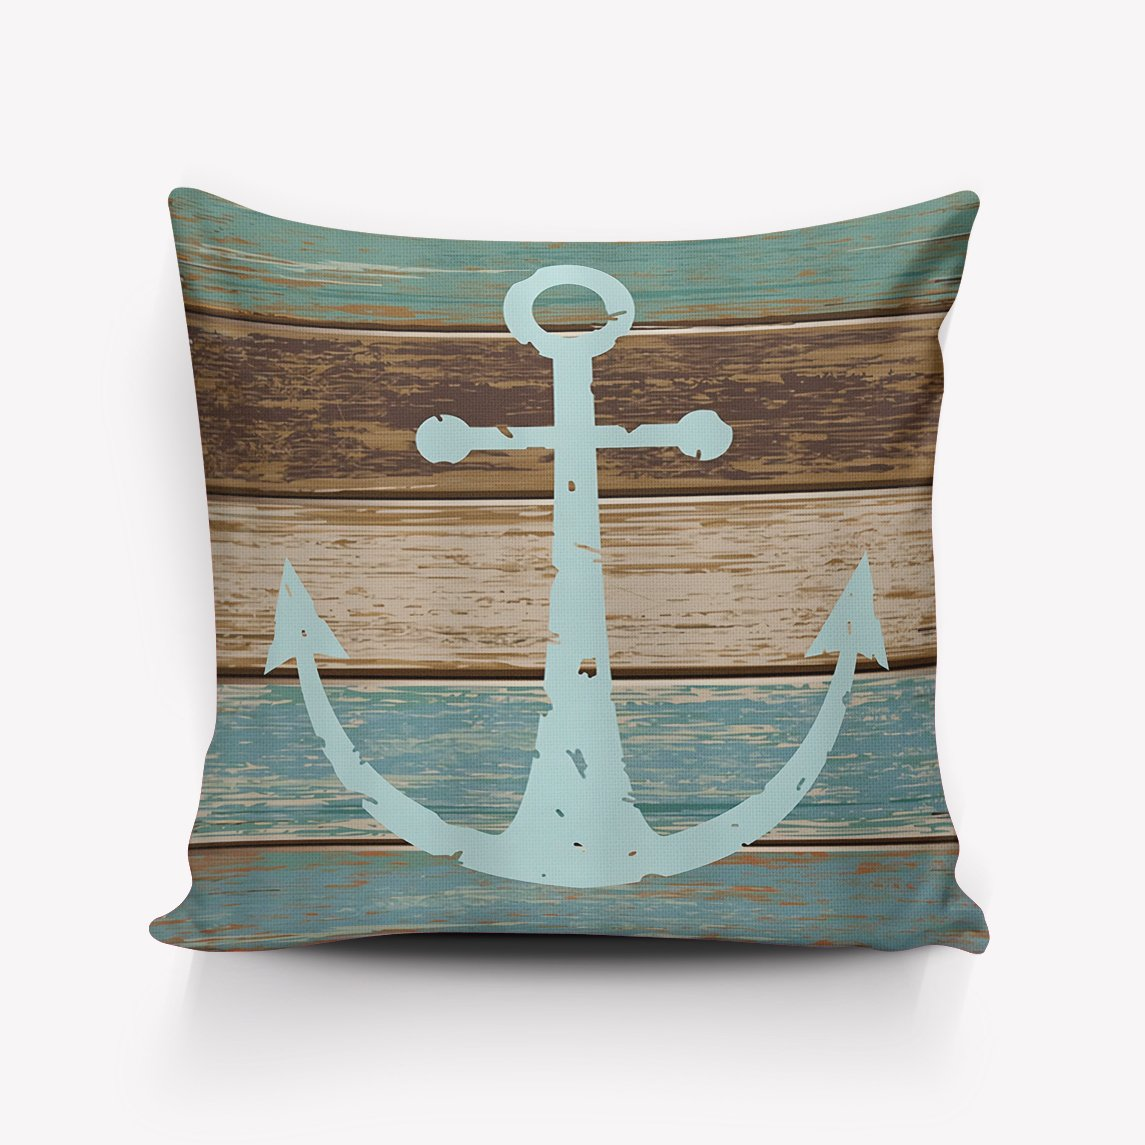 Crystal Emotion Blue Nautical Anchor Rustic Old Barn Wood pillow Case Cushion Cover Home Office Decorative Square 24x24inch